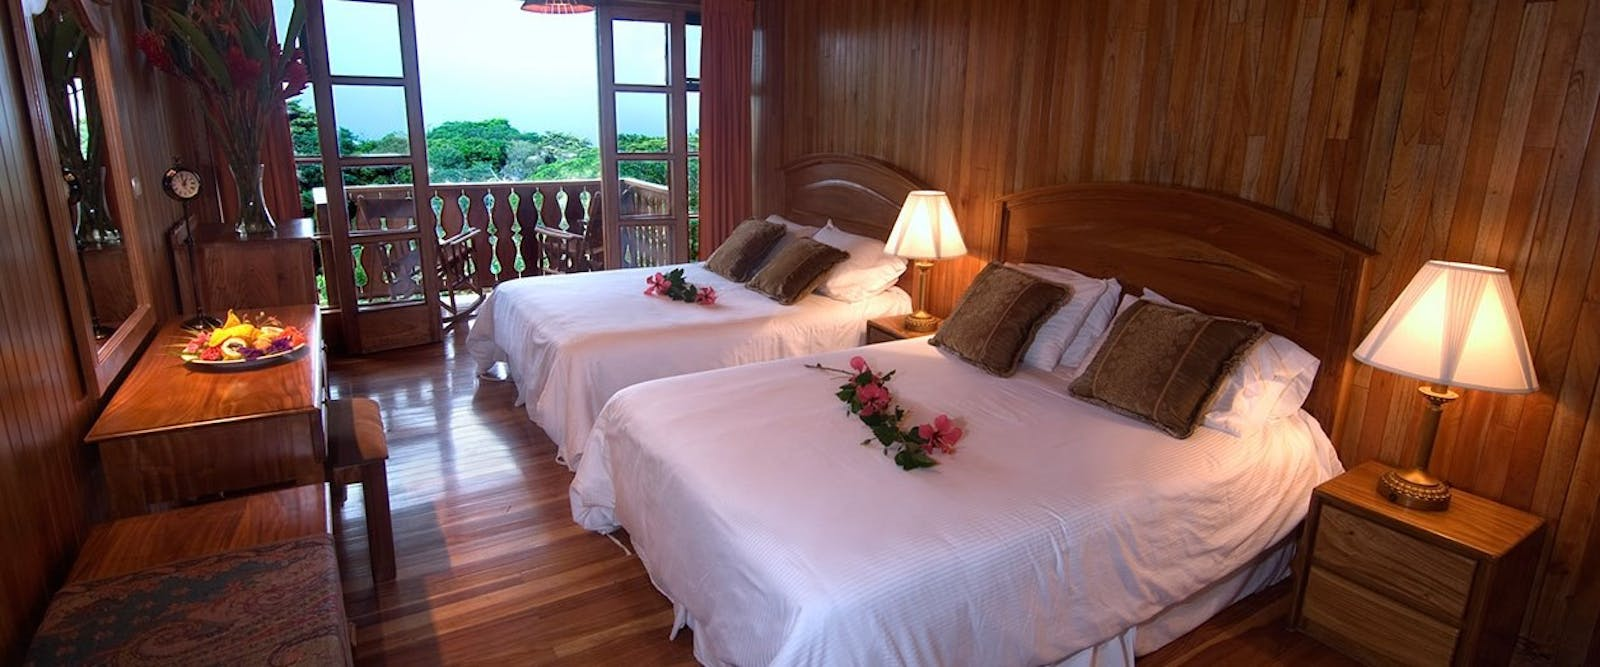 bedroom at Hotel Belmar, Costa Rica